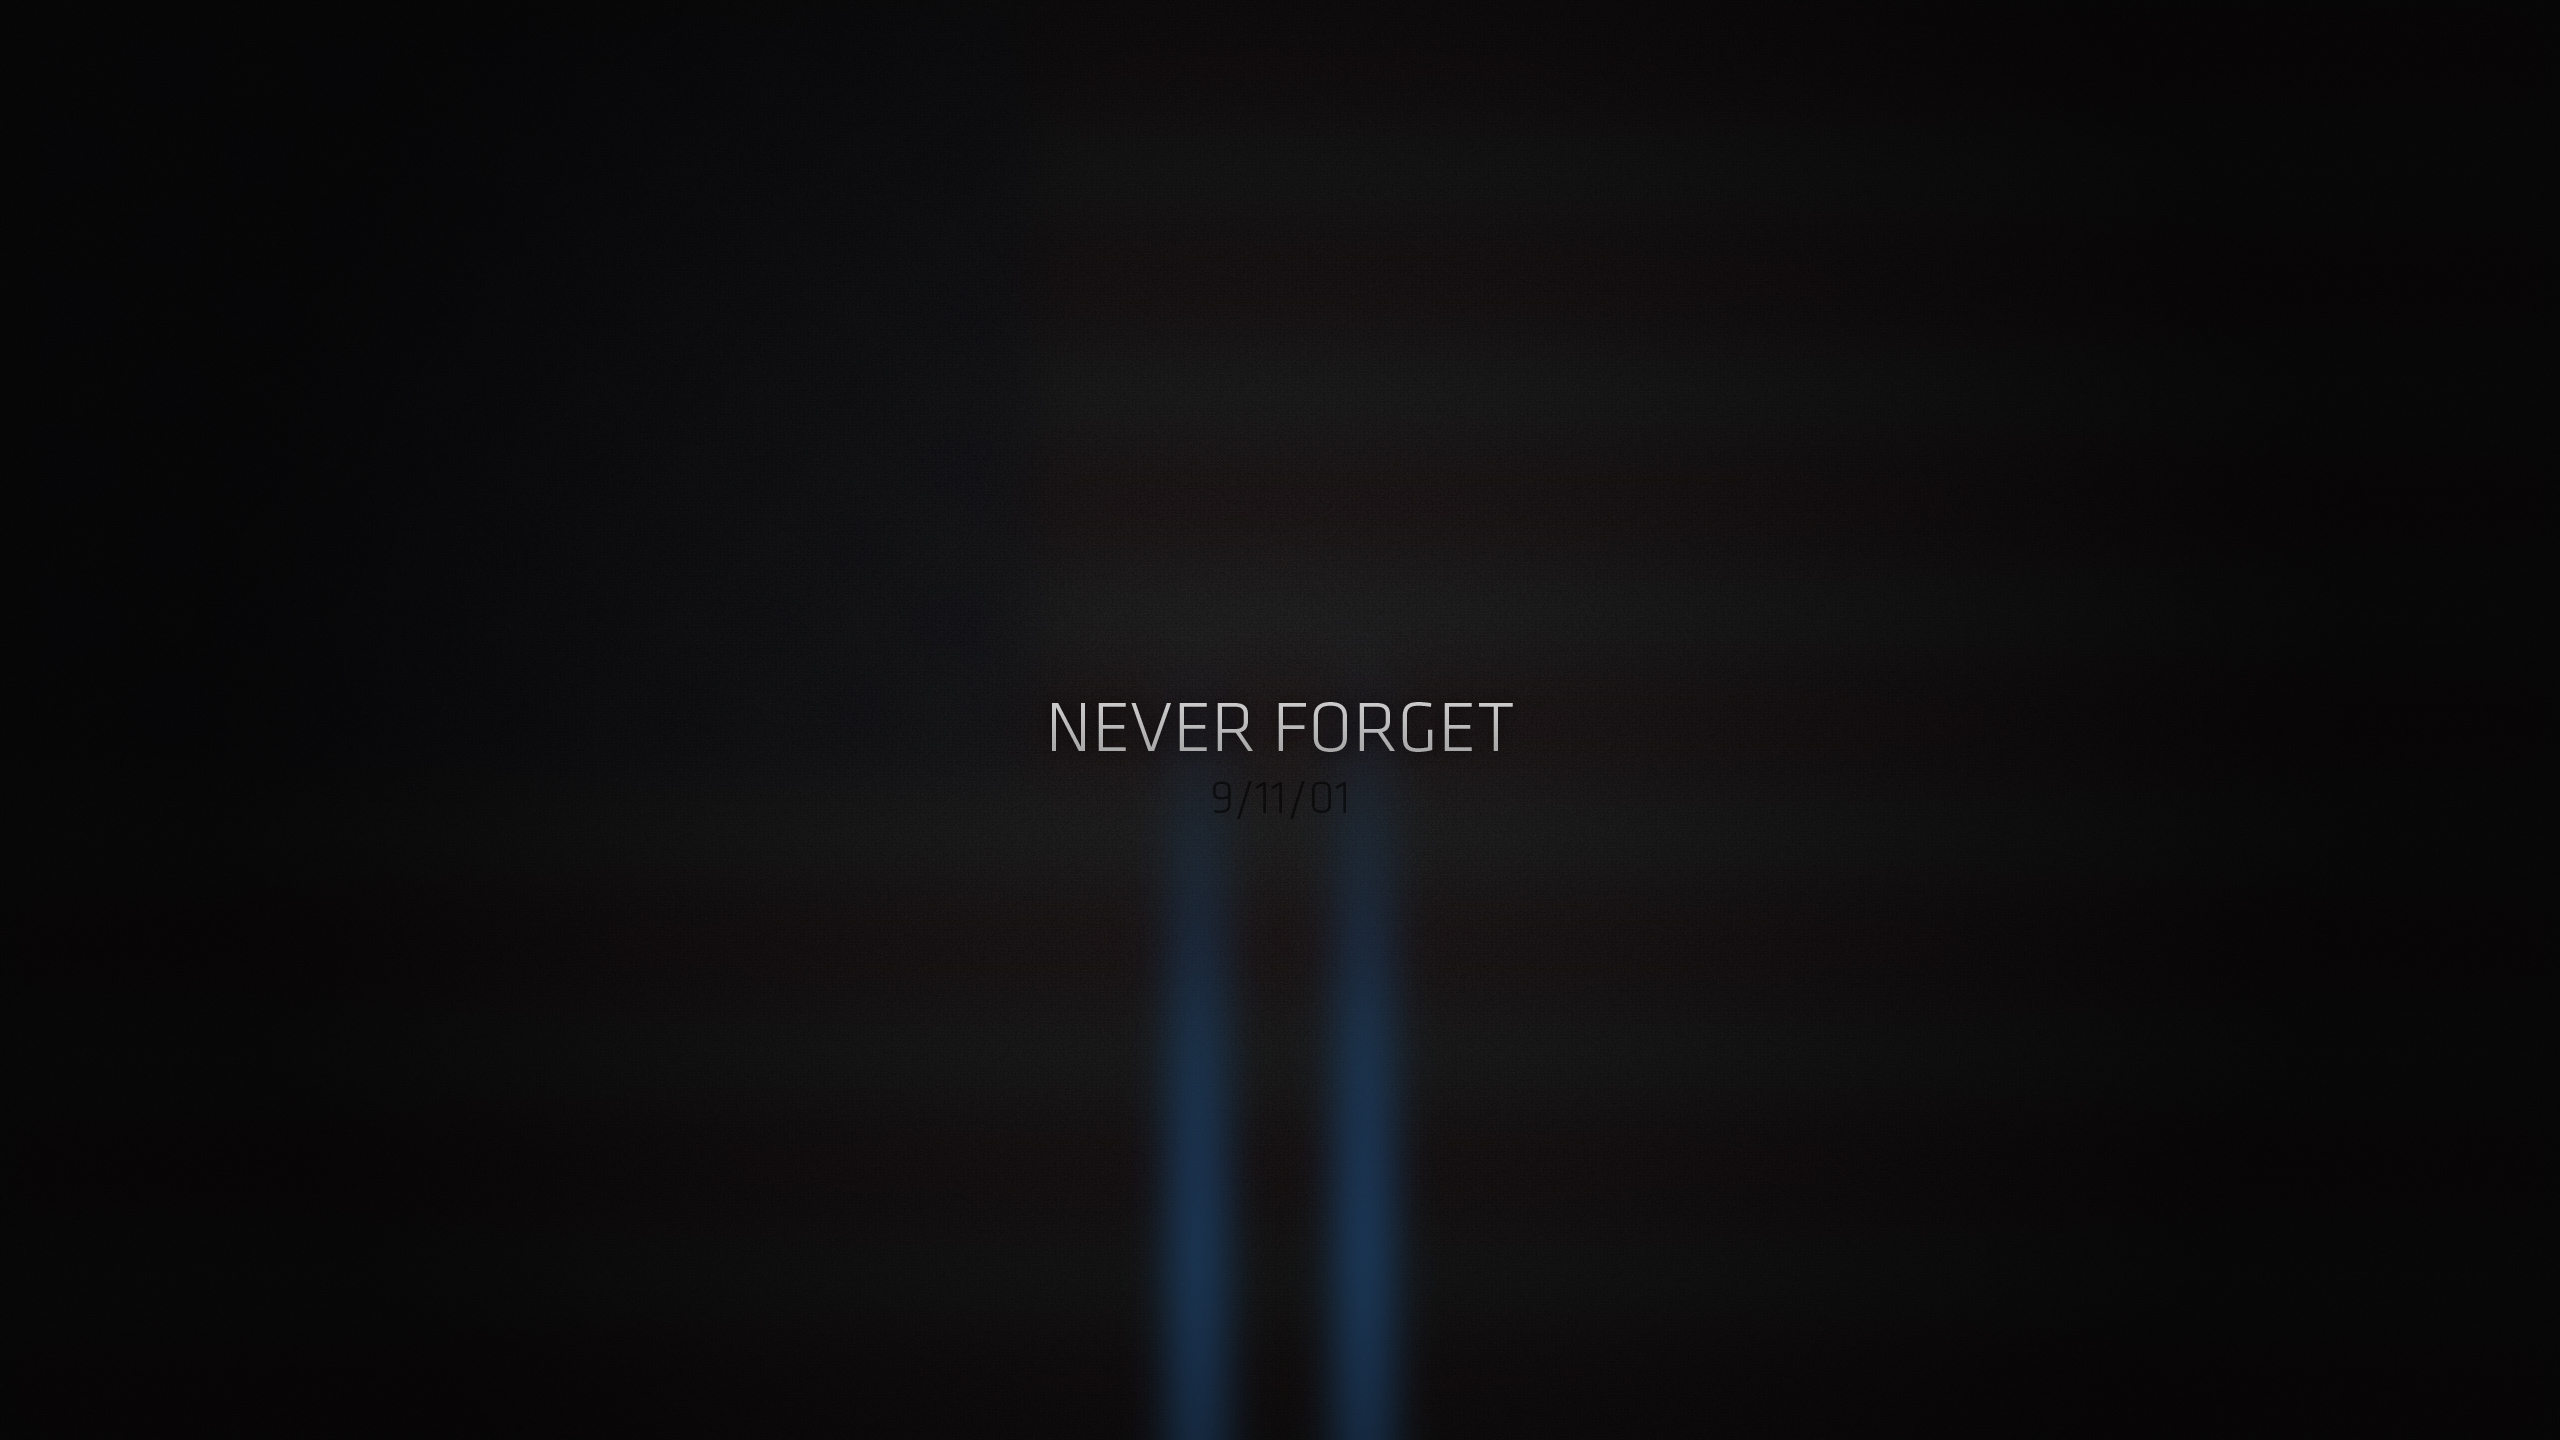 9 11 never forget wallpaper